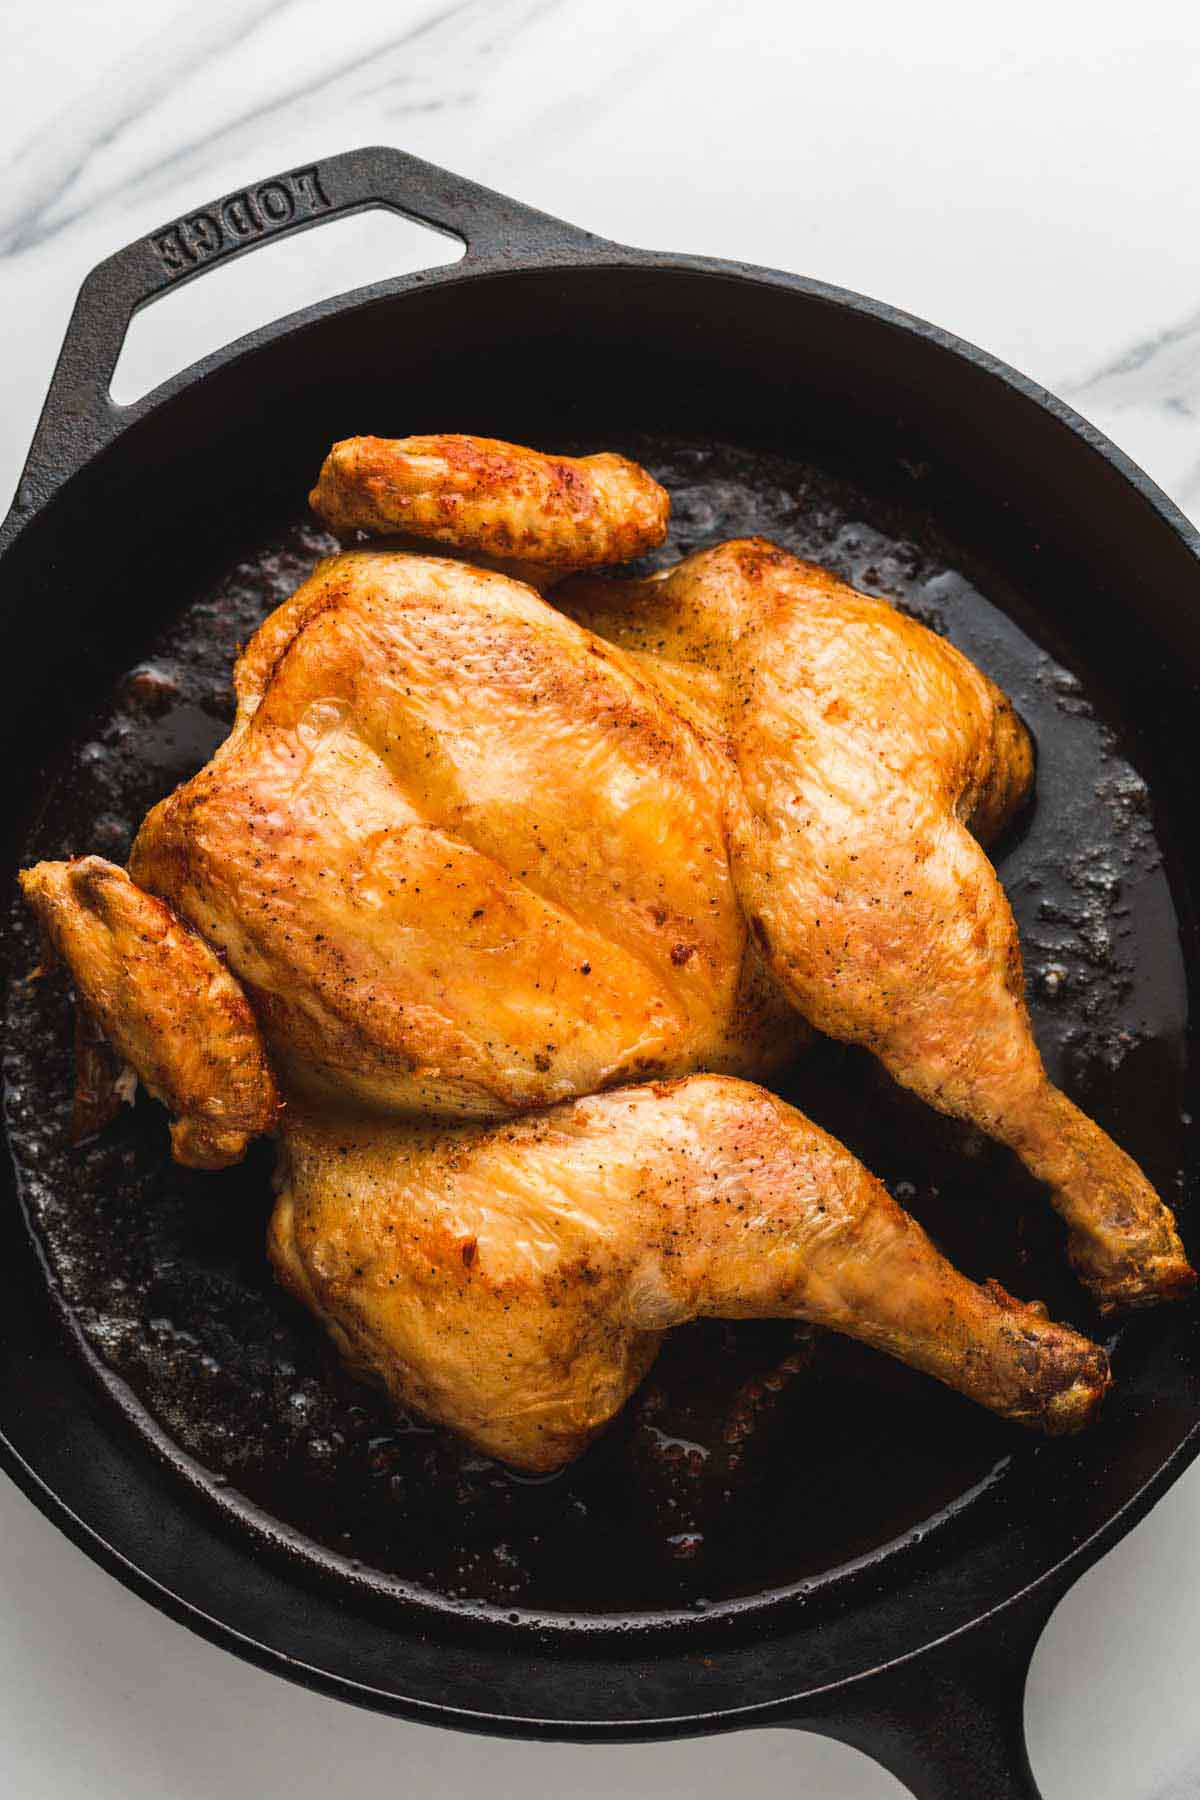 Spatchcock roast chicken in a Lodge cast iron pan